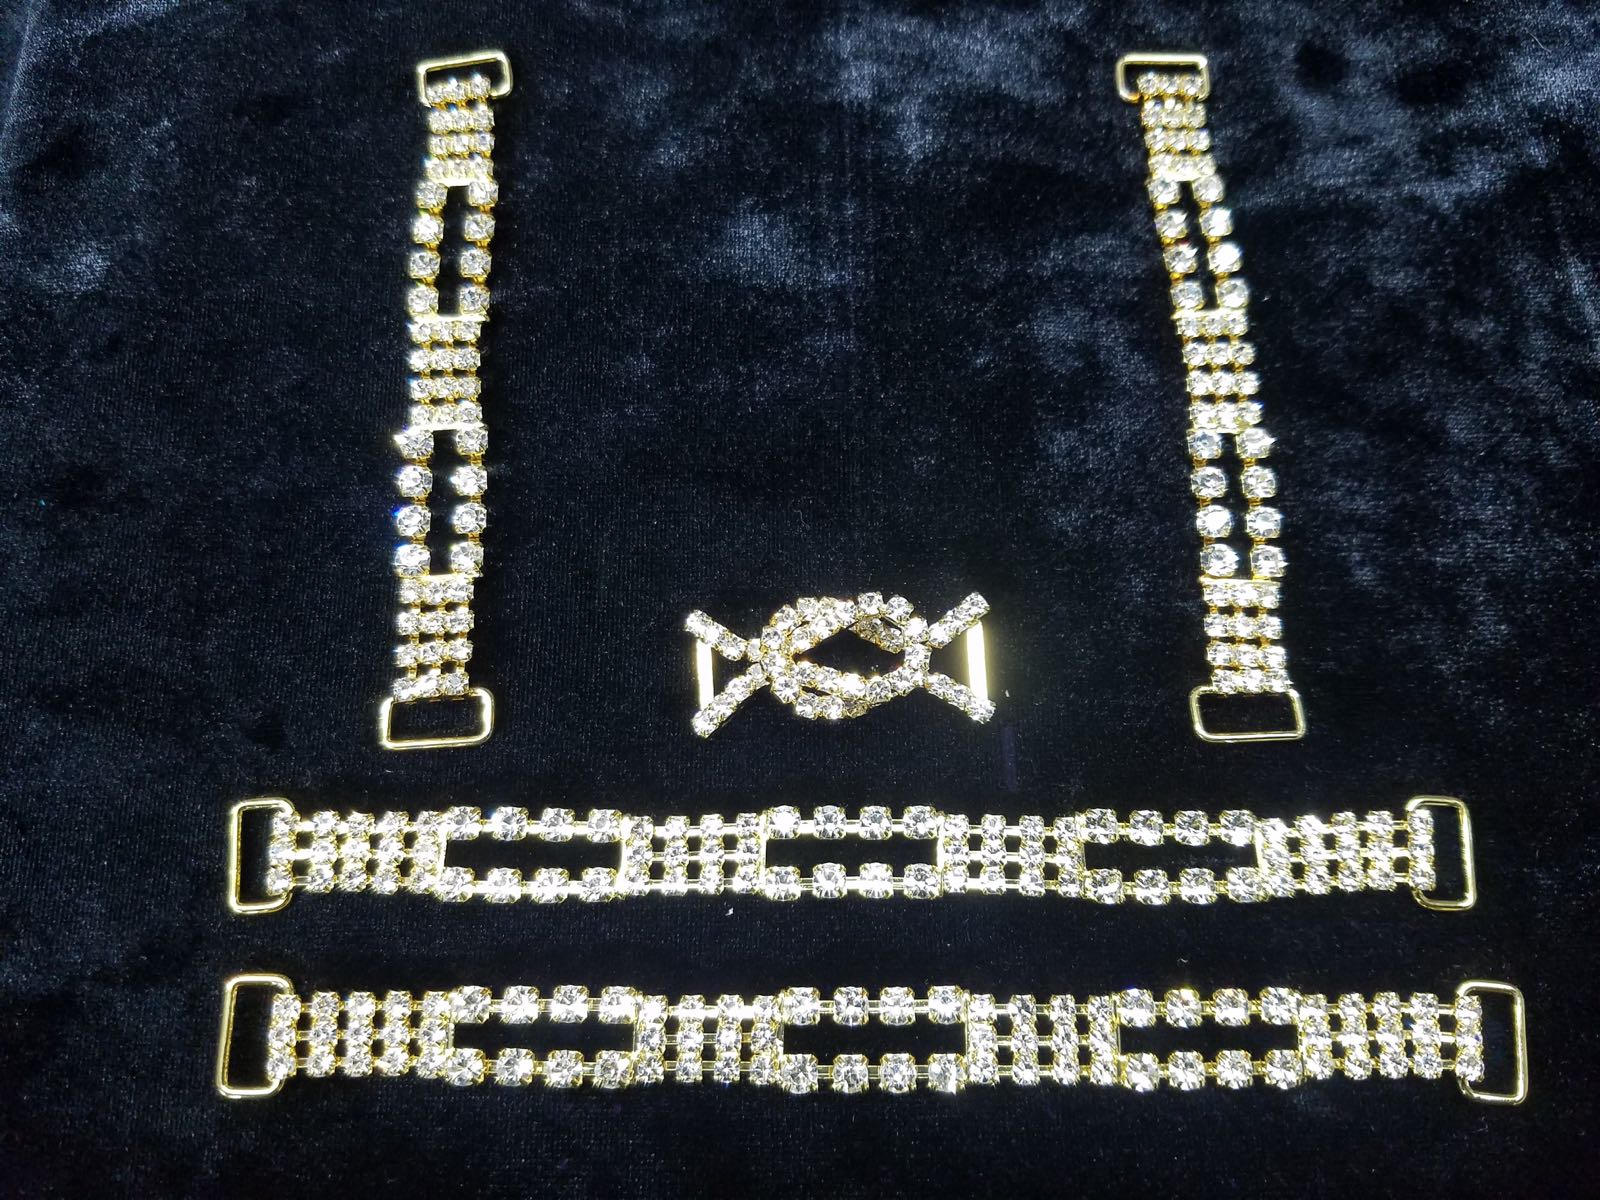 Set F, Gold with clear crystals, $45.00